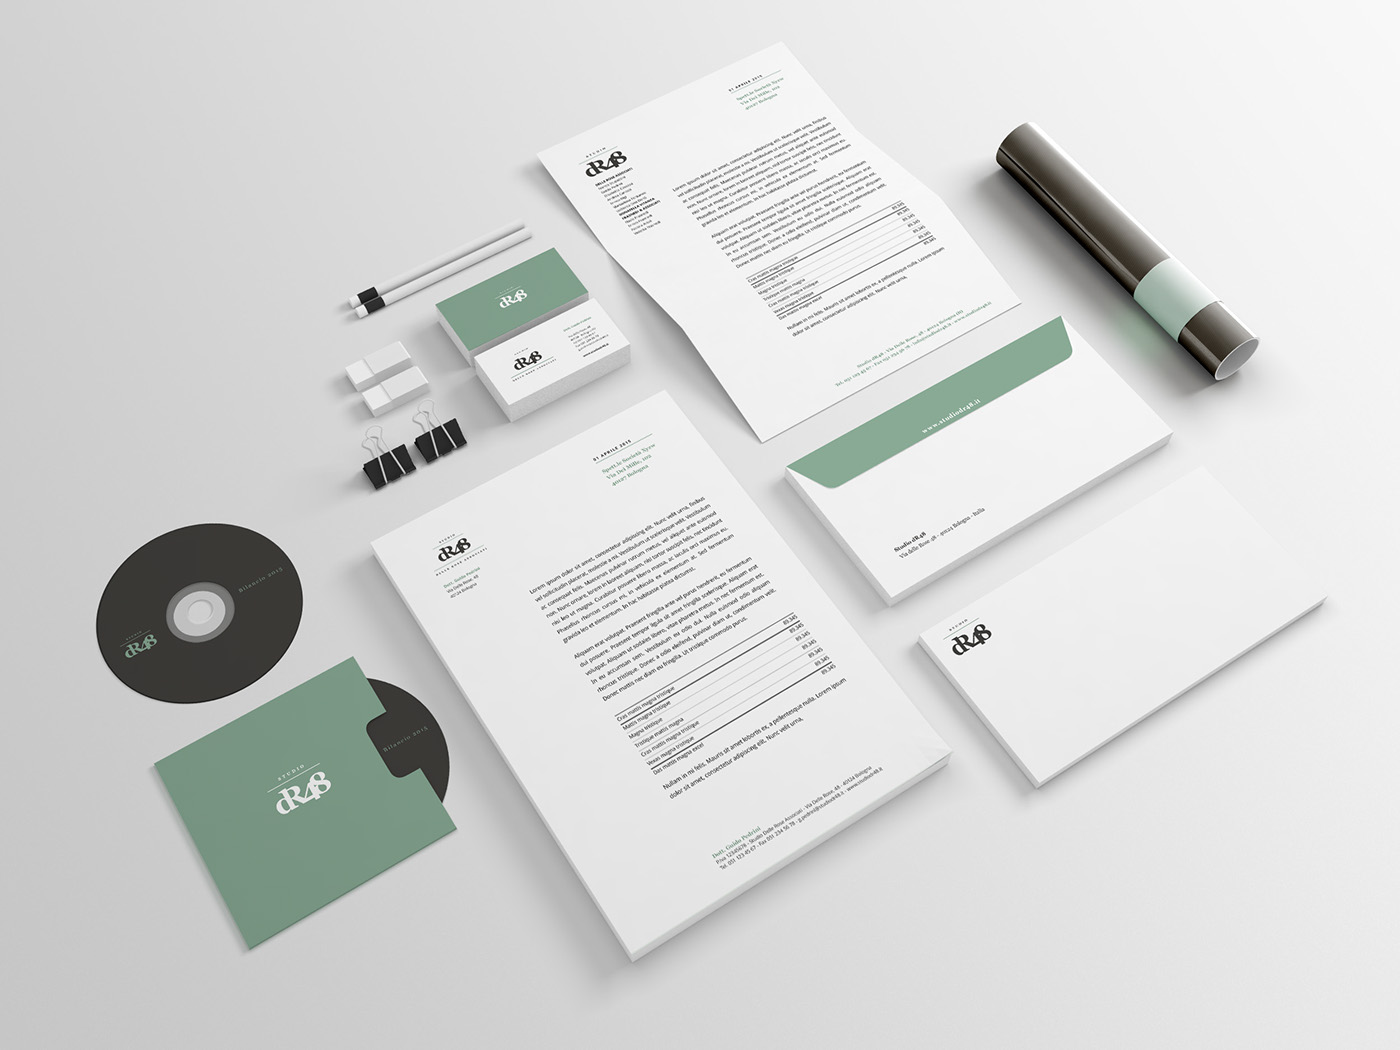 brand accountants firm Stationery photos ArtDirection graphic